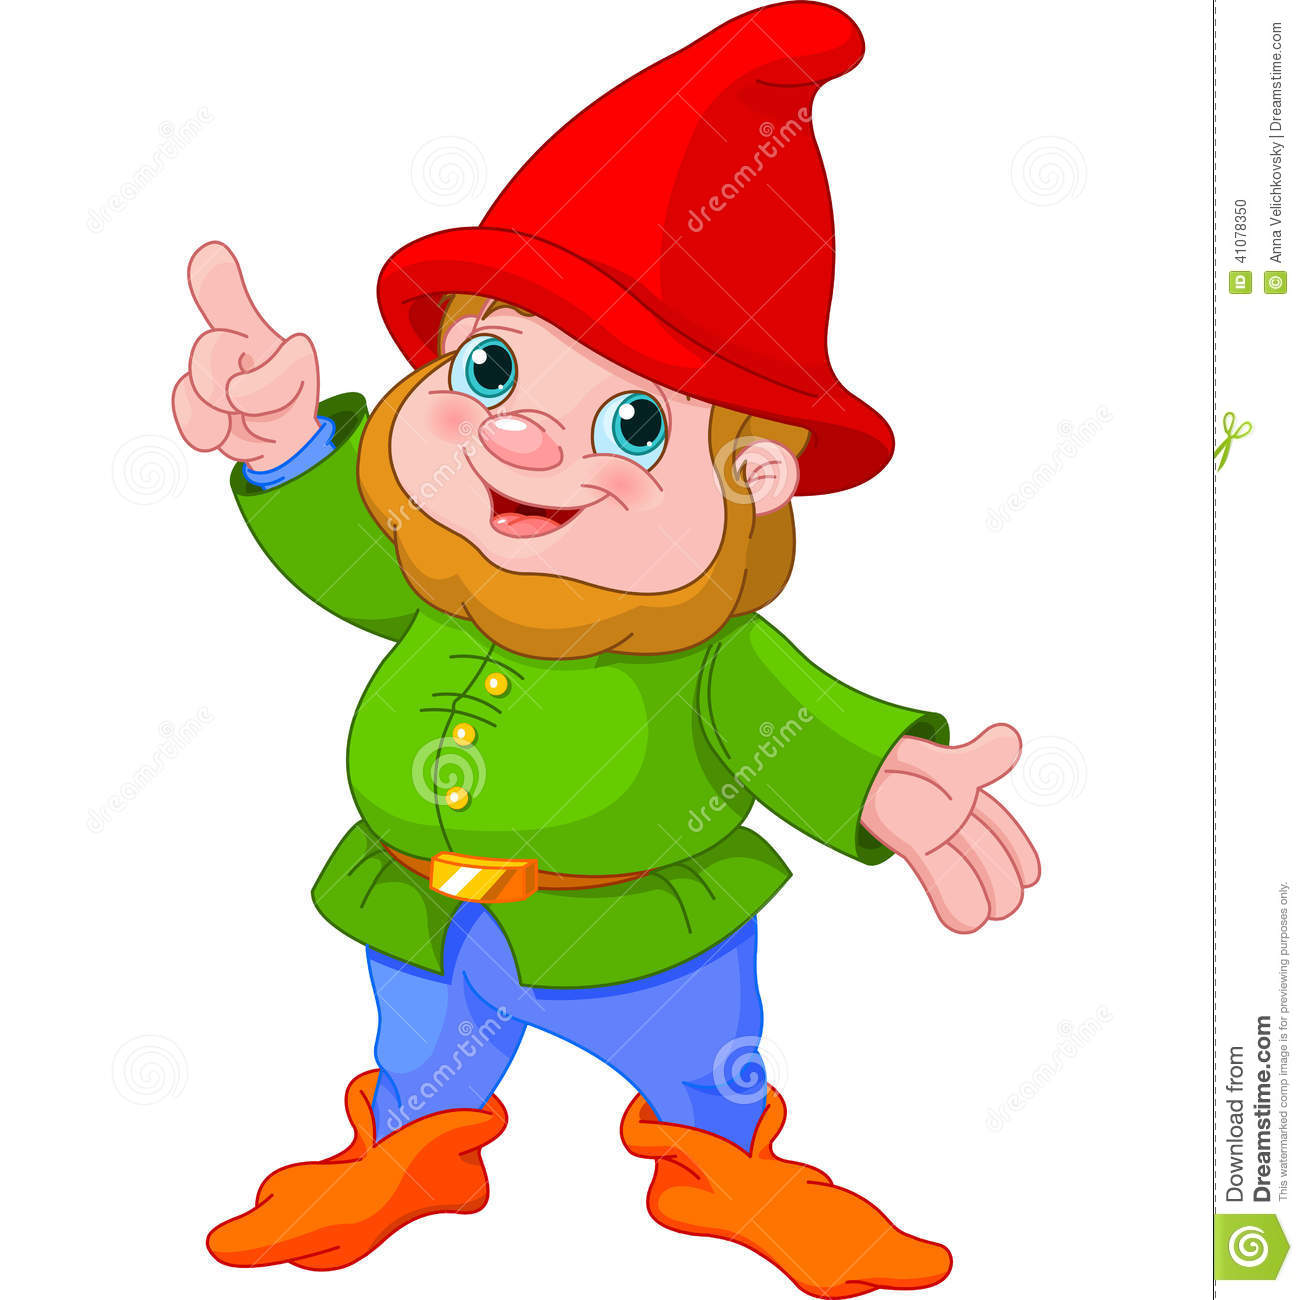 8 Vector Cartoon Gnome Merchant Images , Cute Garden Gnome